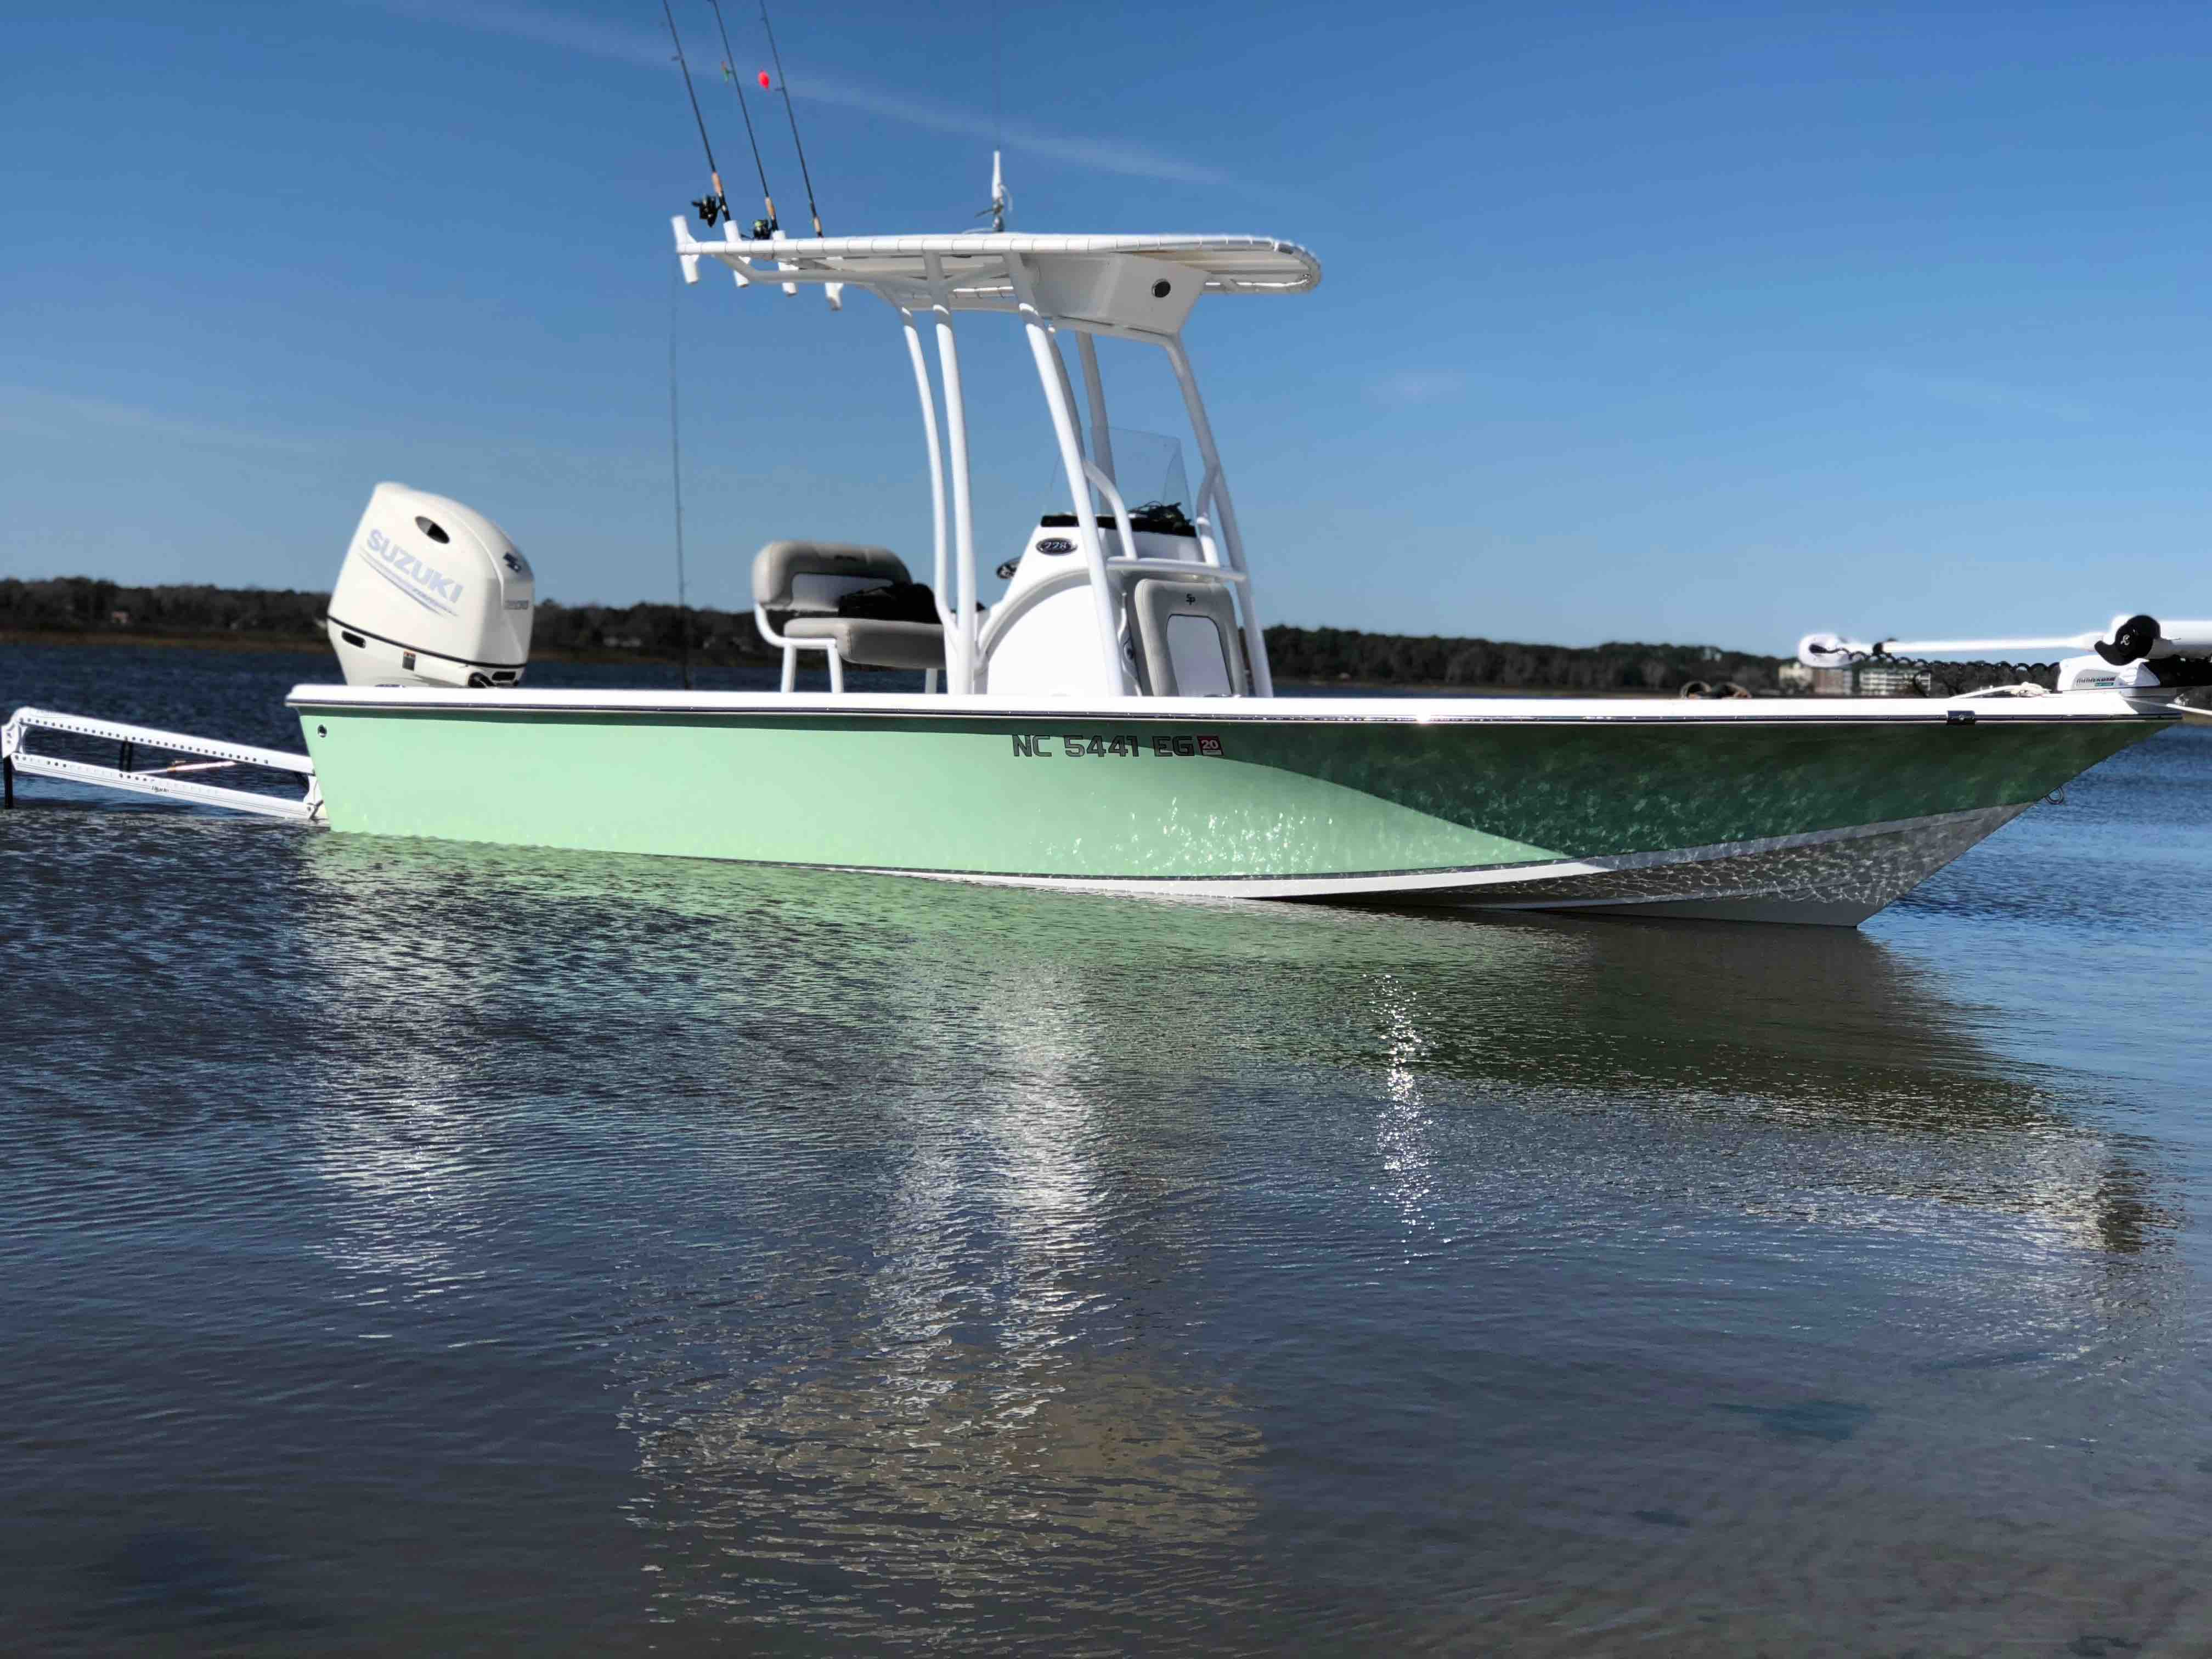 Tideline Charters offers nearshore fishing tours